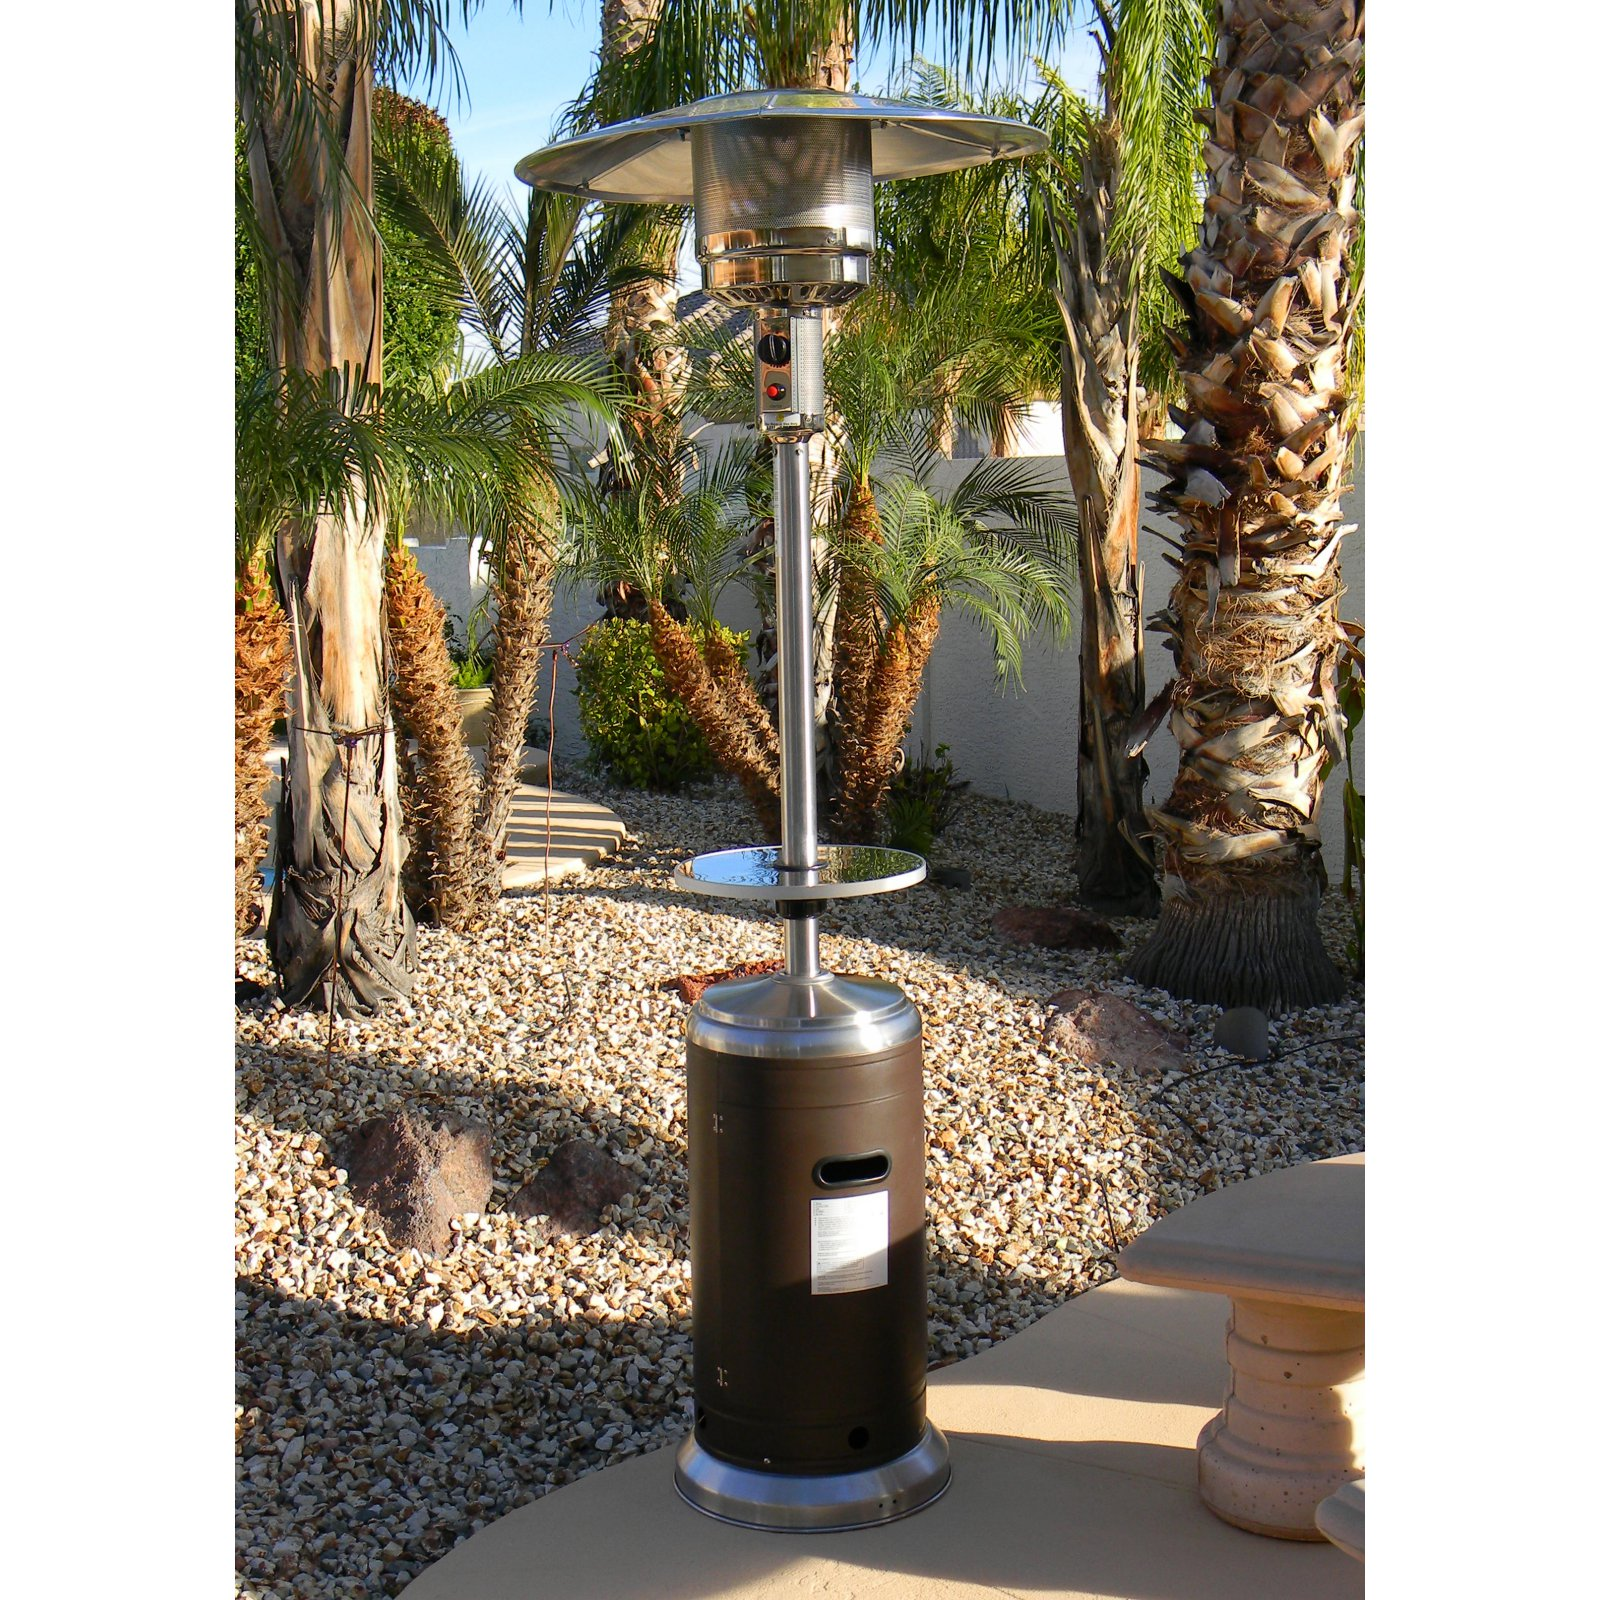 Hiland Tall Stainless Steel and Hammered Bronze Patio Heater with Table